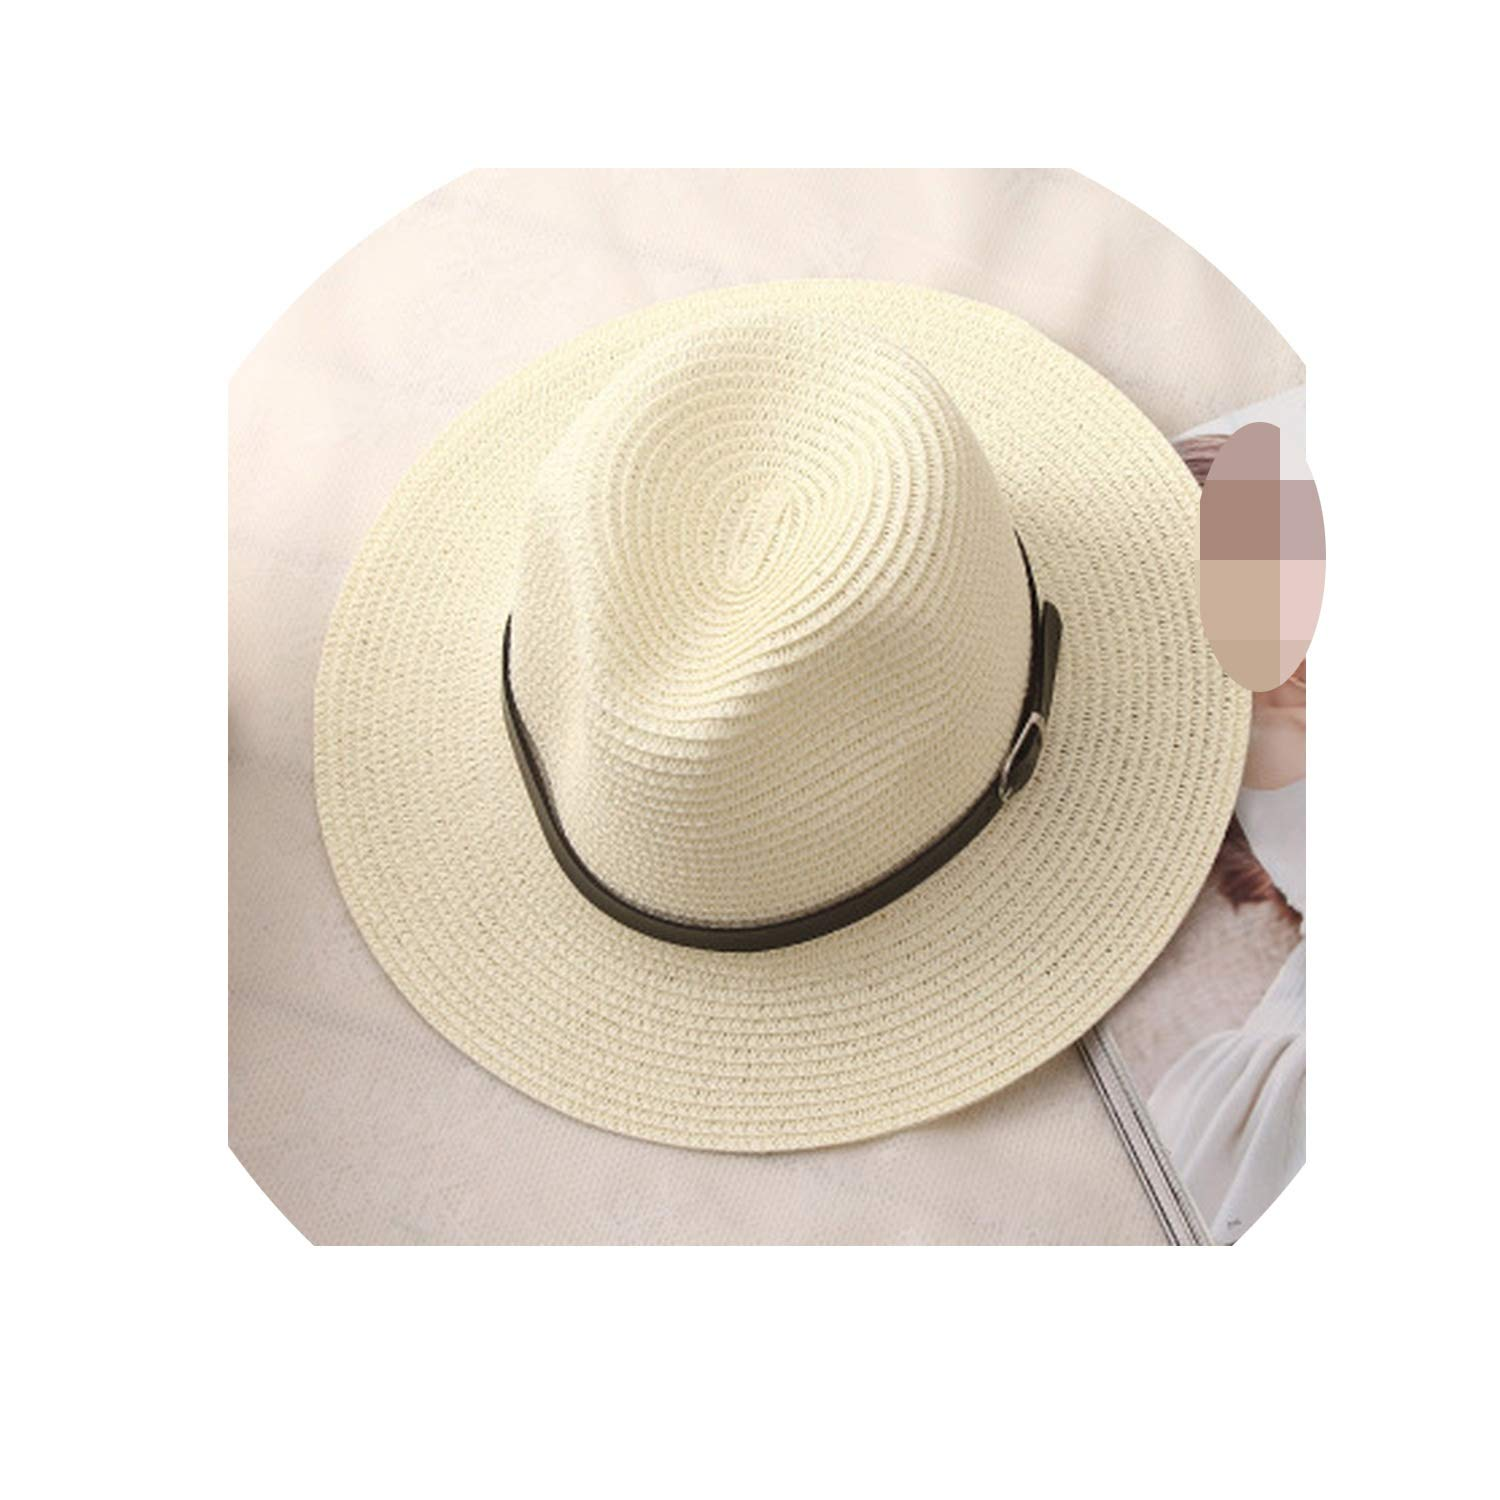 Women Summer hat Men Classic Black Girdle Panama Sunhats Jazz Hat Beach Hats for Women Hats Femme